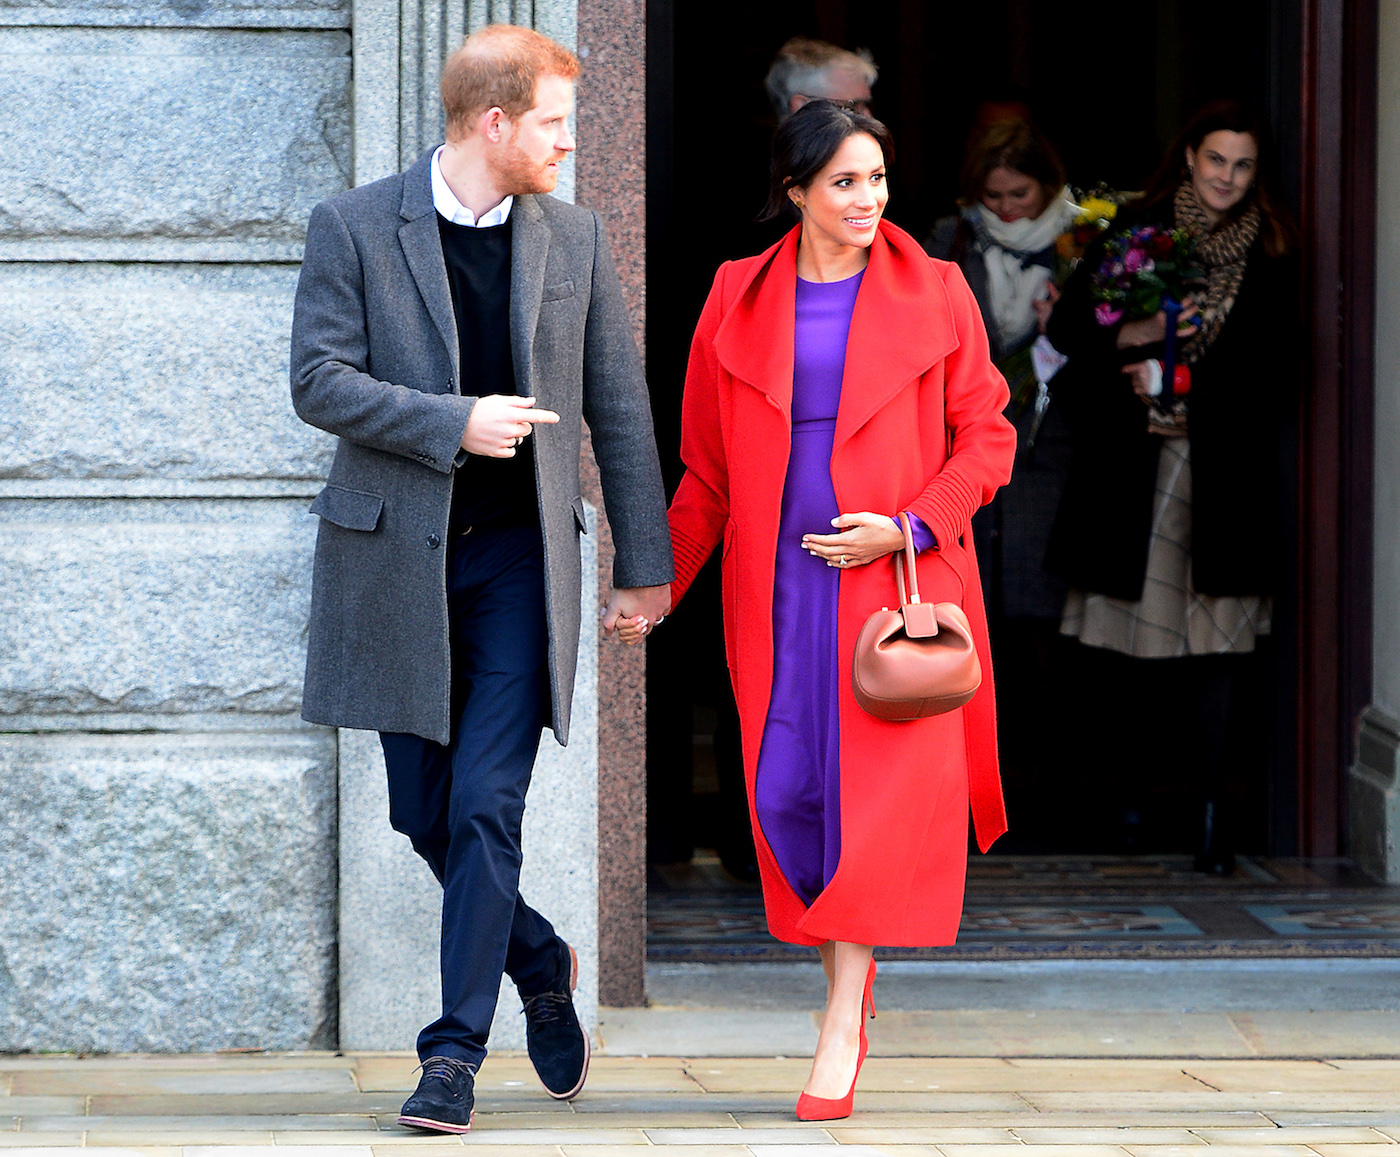 Meghan Markle Wearing Bright Red Wrap Coat